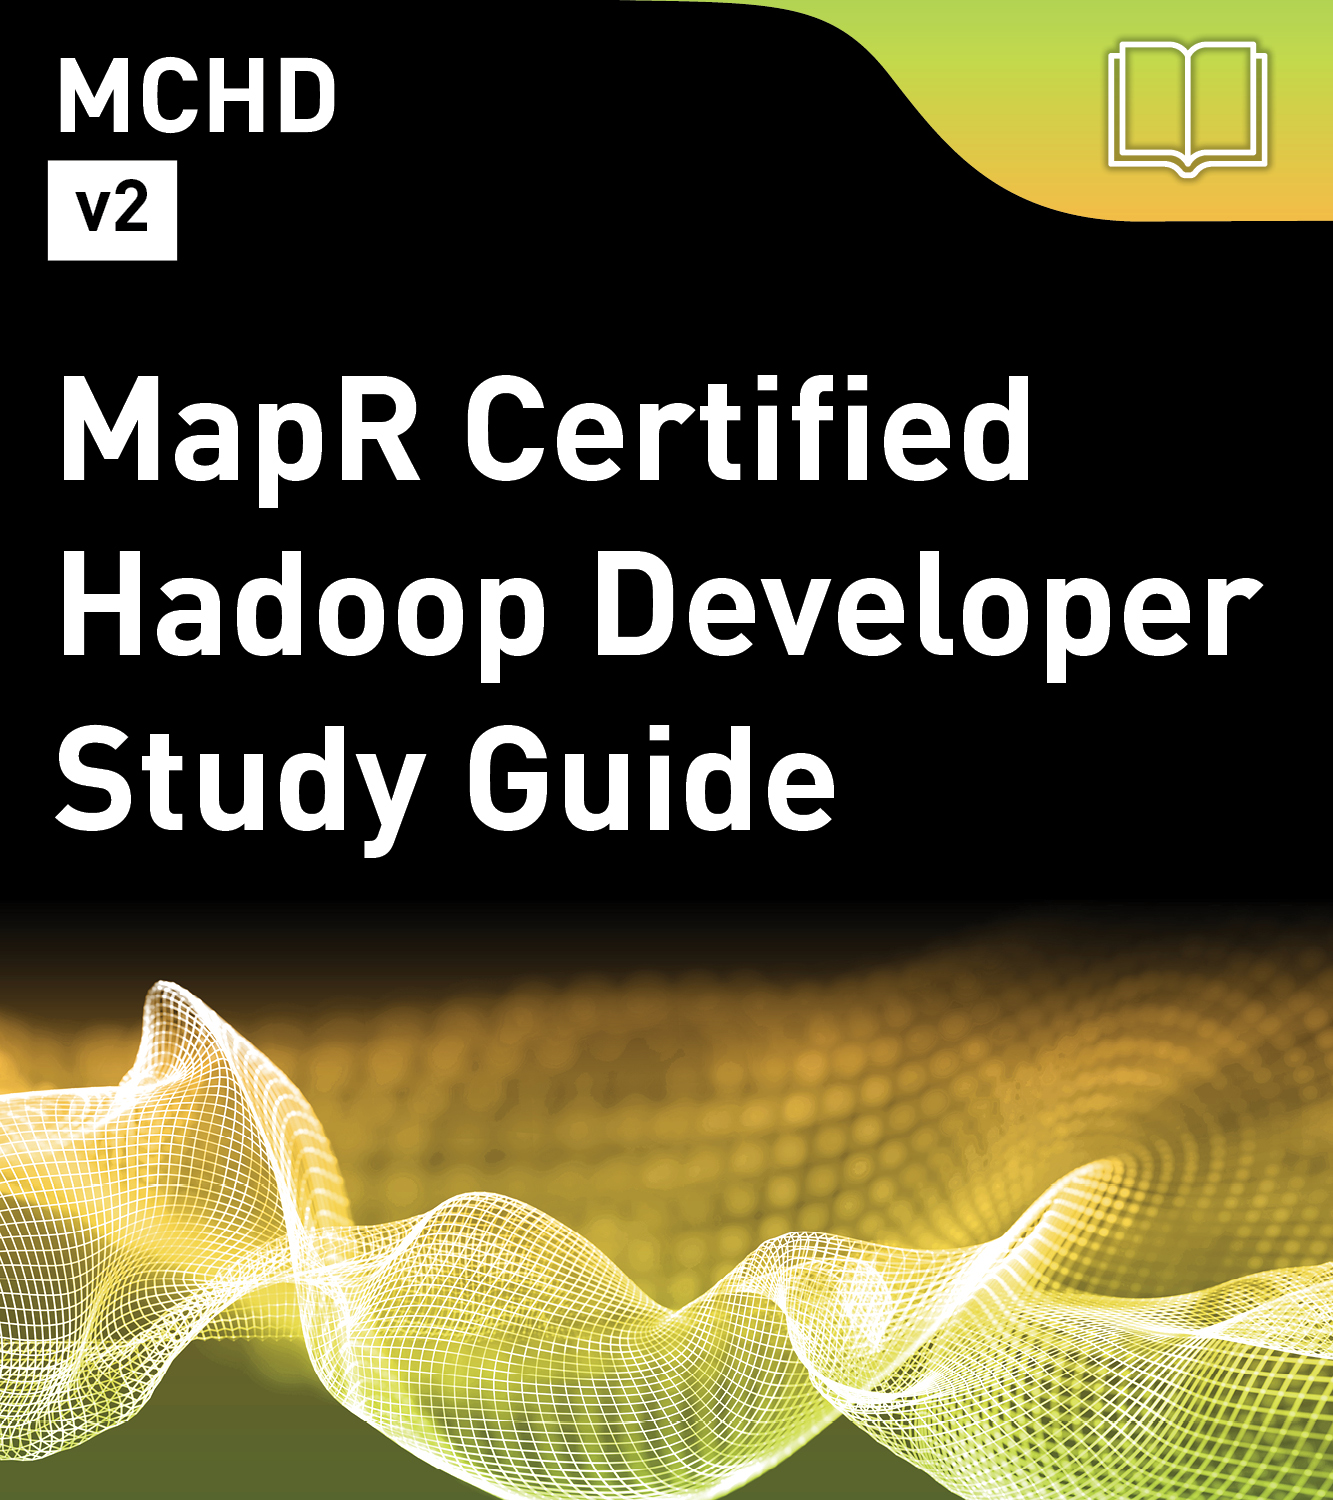 MCHD Study Guide - MapR Certified Hadoop Developer (v2)